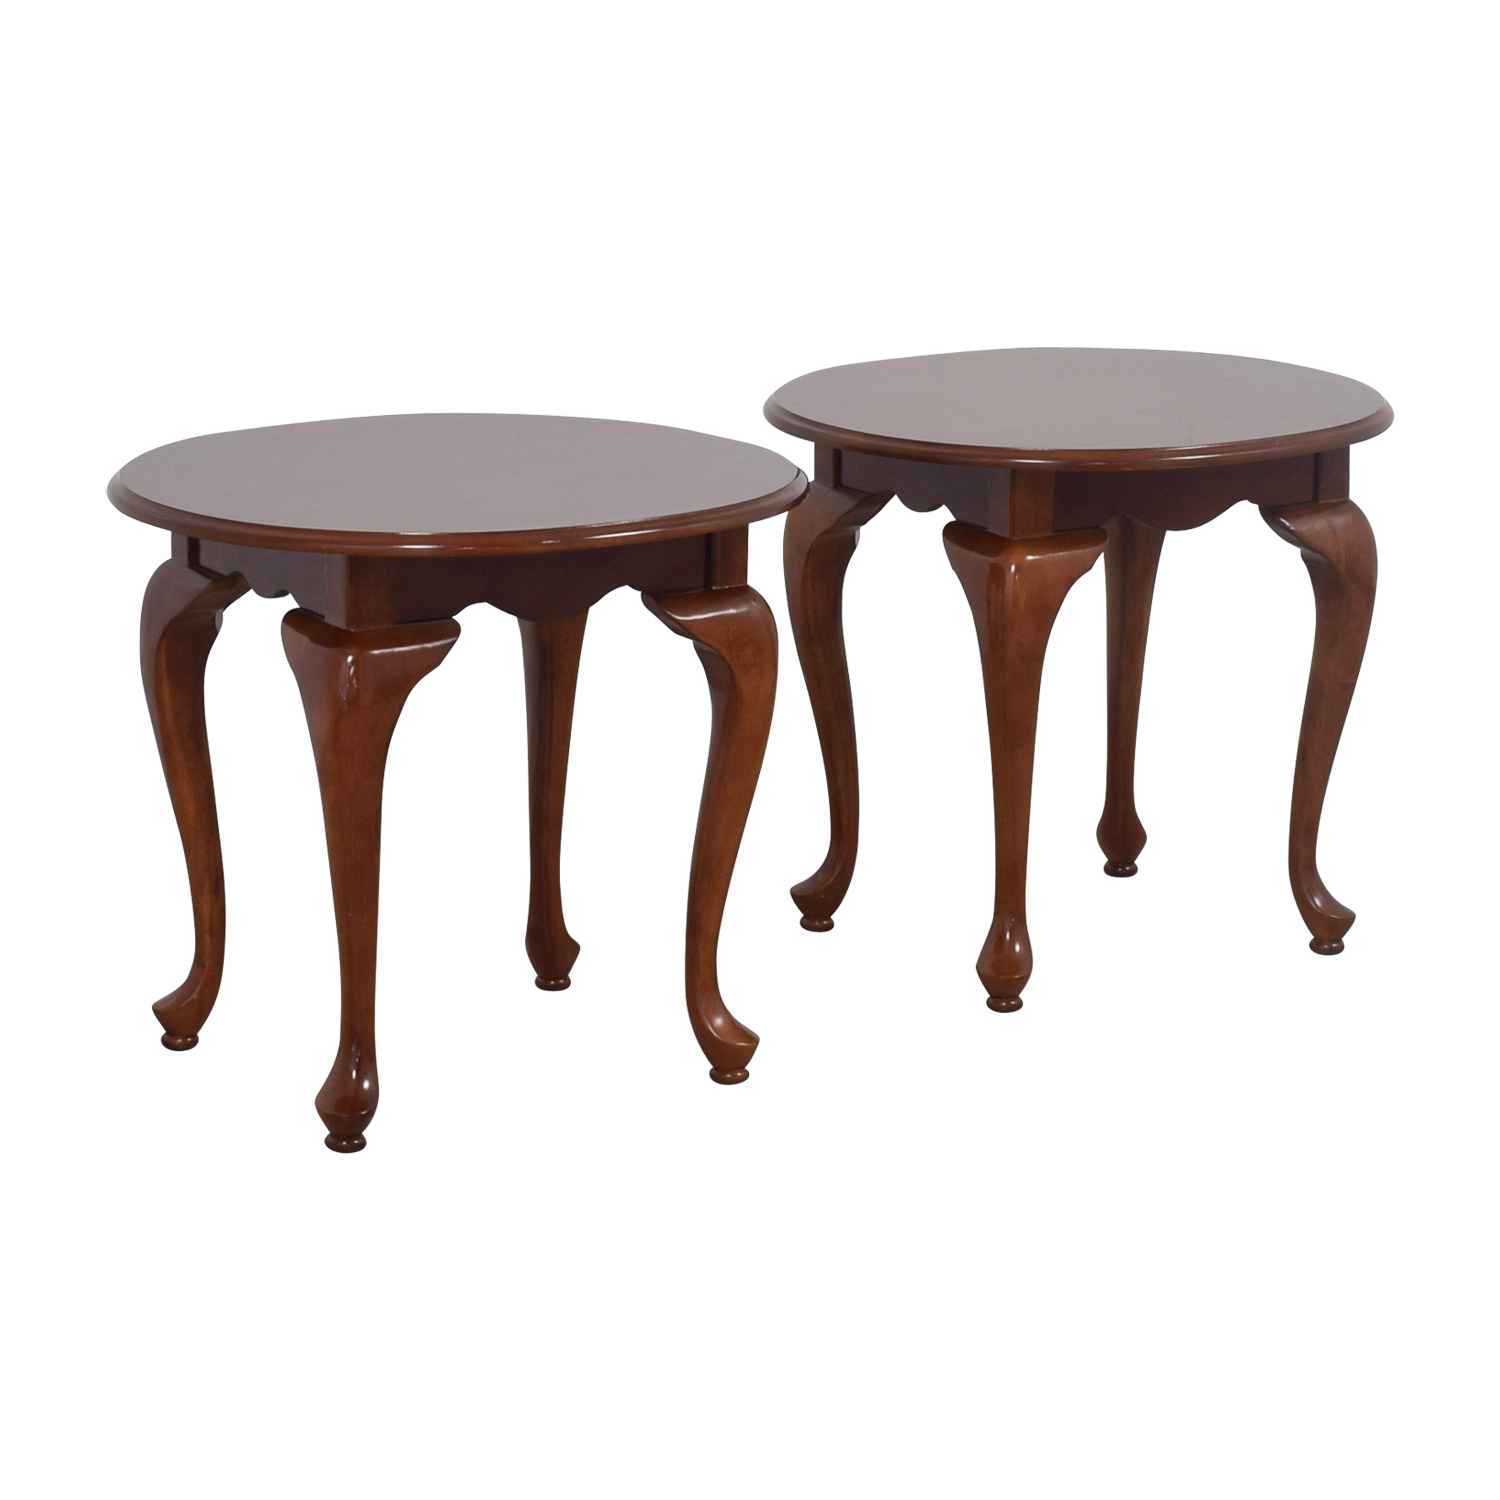 90 Off Oval Wood End Tables Tables